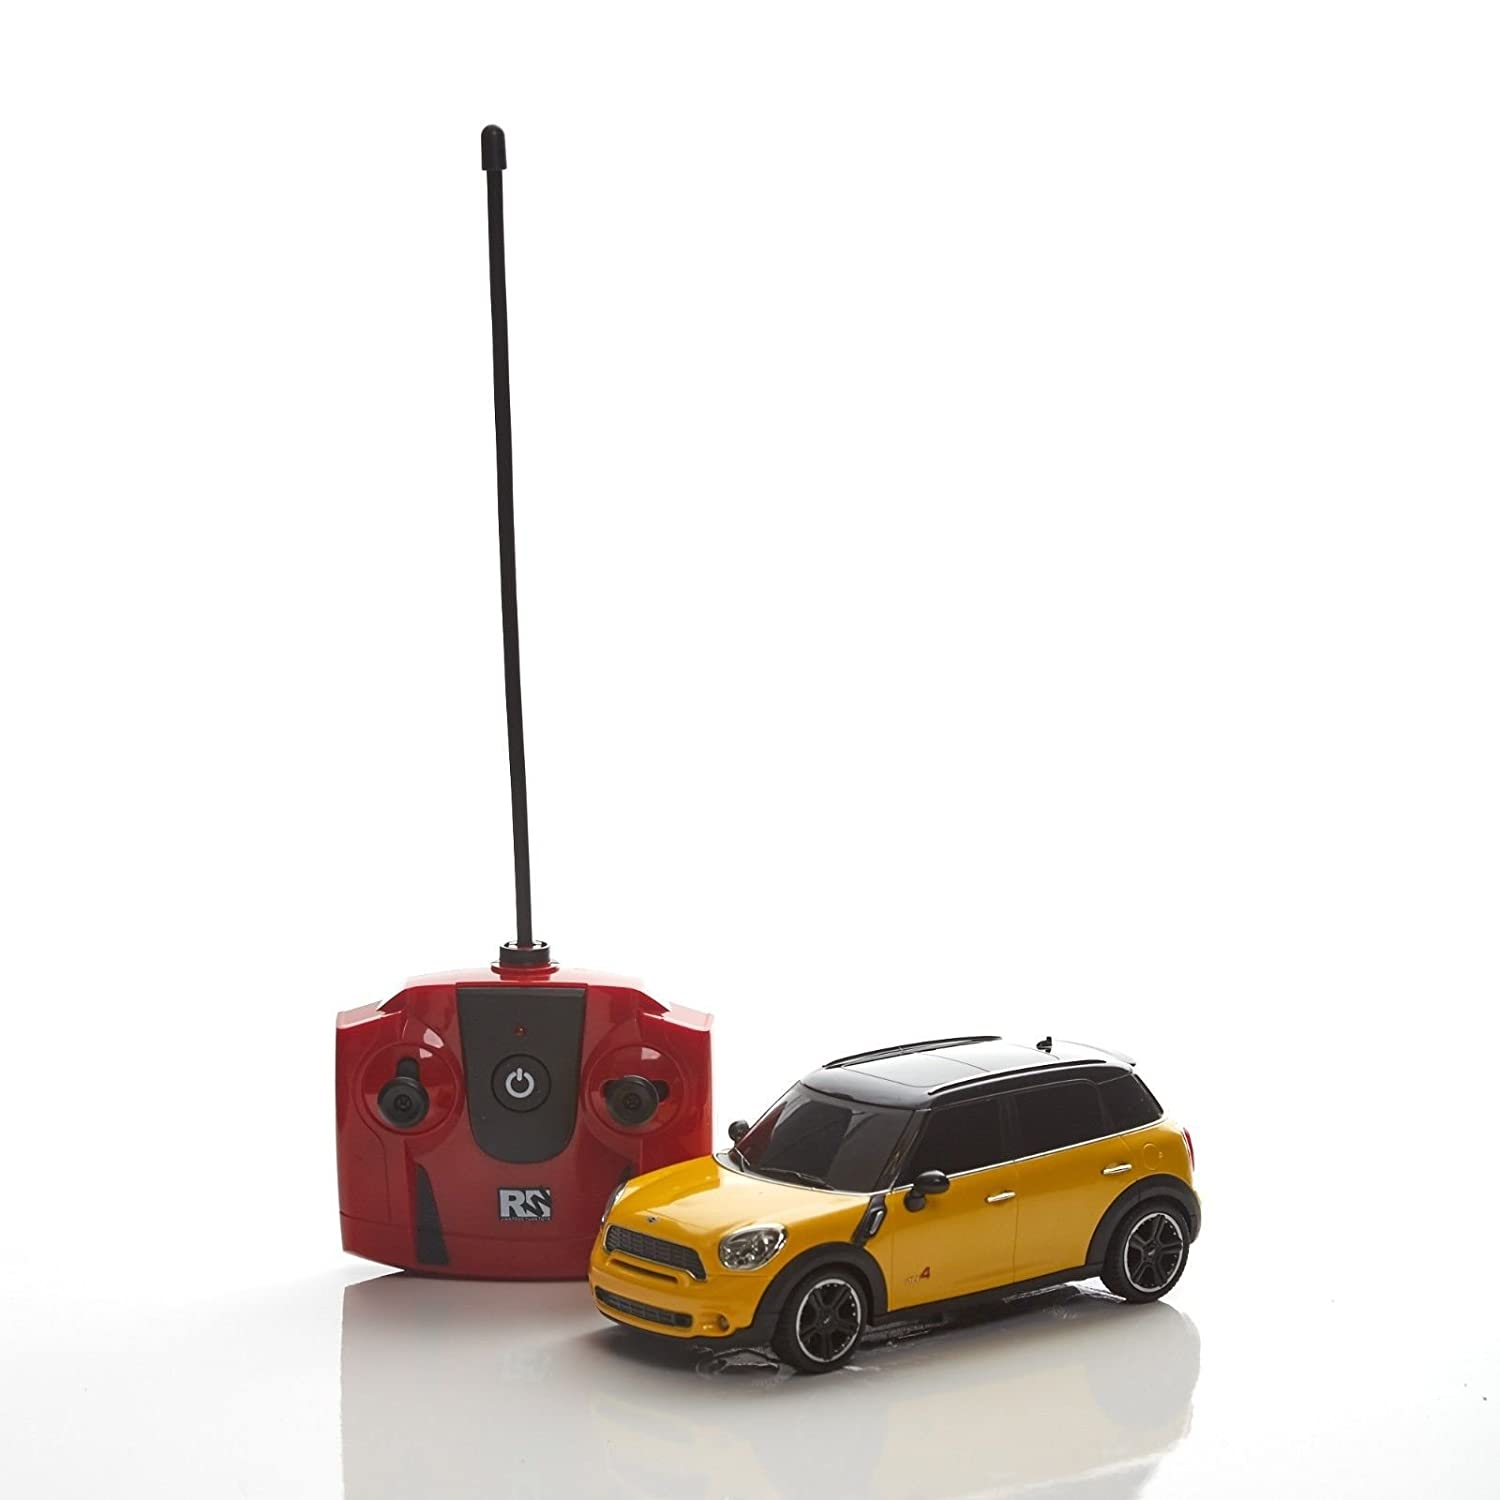 RC Radio Remote Controlled Car Scale 1:24 Official Mini John Cooper Works Yellow Jian Feng Yuan Toys